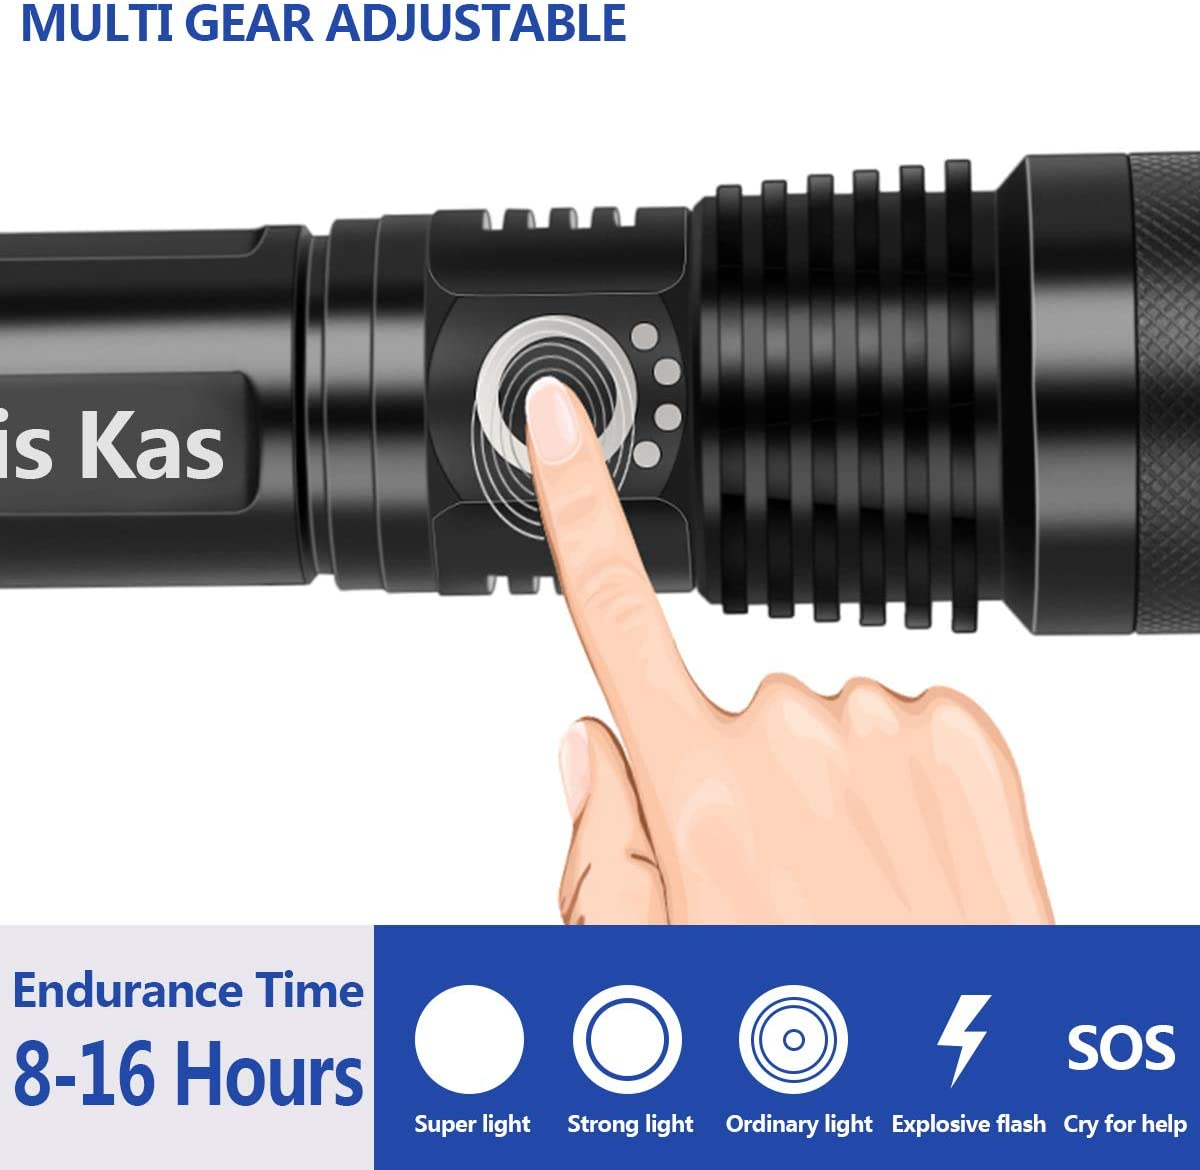 Waterproof Power Display Rechargeable Flashlights LED Tactical Flashlight,Hand Held Light with Rechargeable Battery for Camping Hiking Outdoor Activity Emergency(black) High Lumens Zoomable 5 Modes